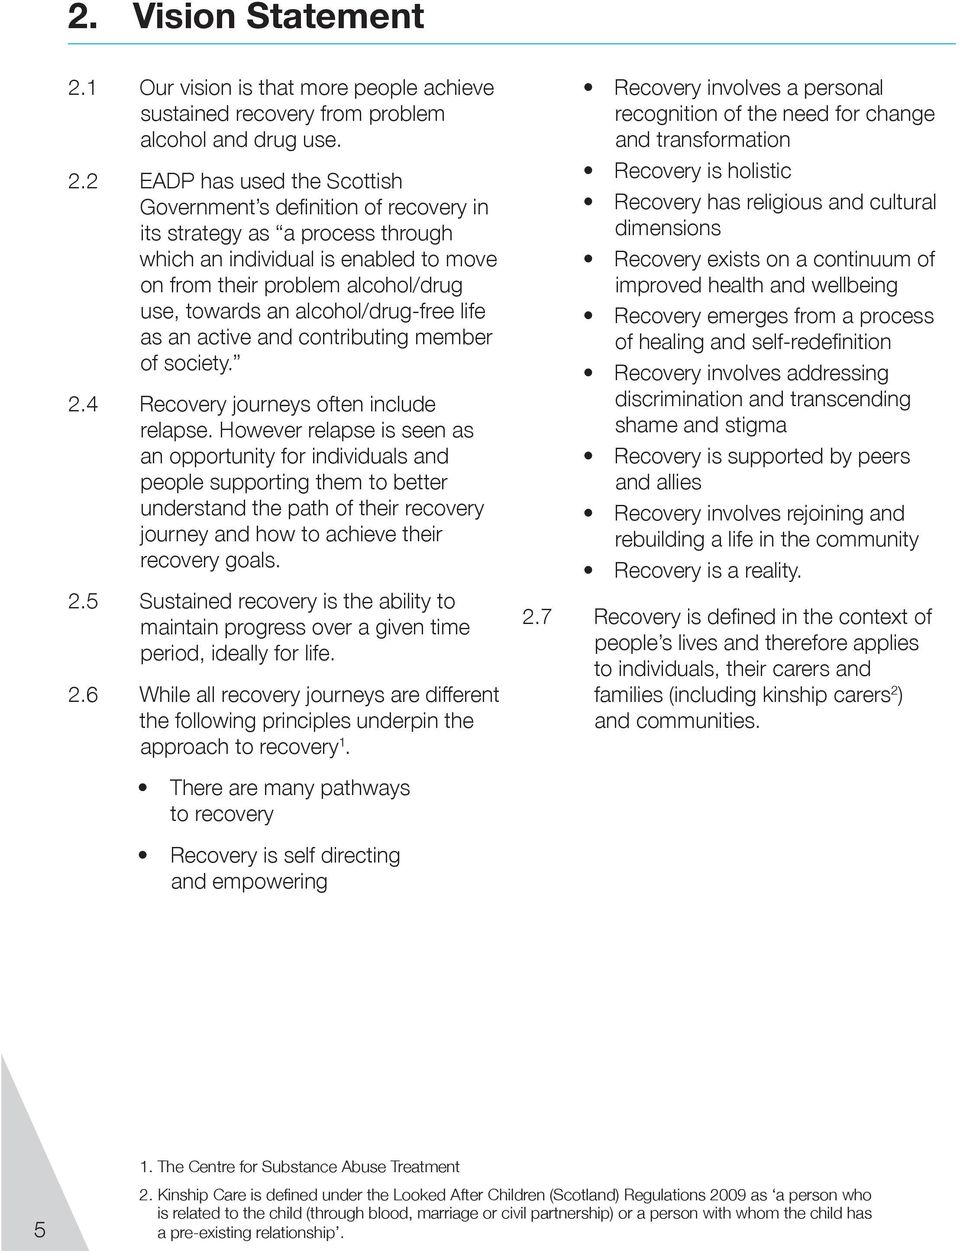 2 EADP has used the Scottish Government s definition of recovery in its strategy as a process through which an individual is enabled to move on from their problem alcohol/drug use, towards an